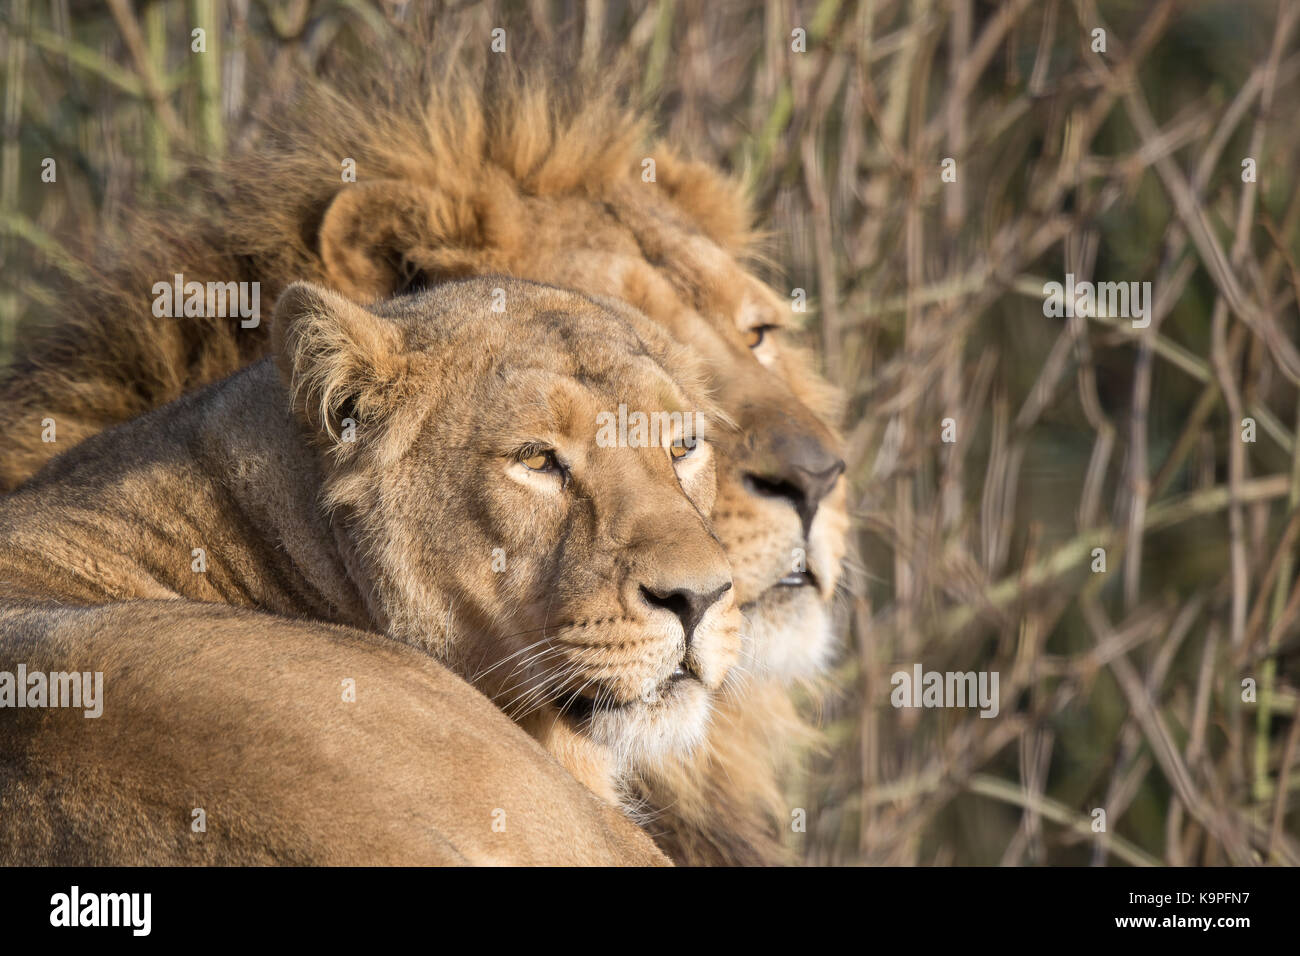 Close up of Asiatic lion & lioness (head & shoulders) at rest together, in relaxed pose. Female is main - Stock Image